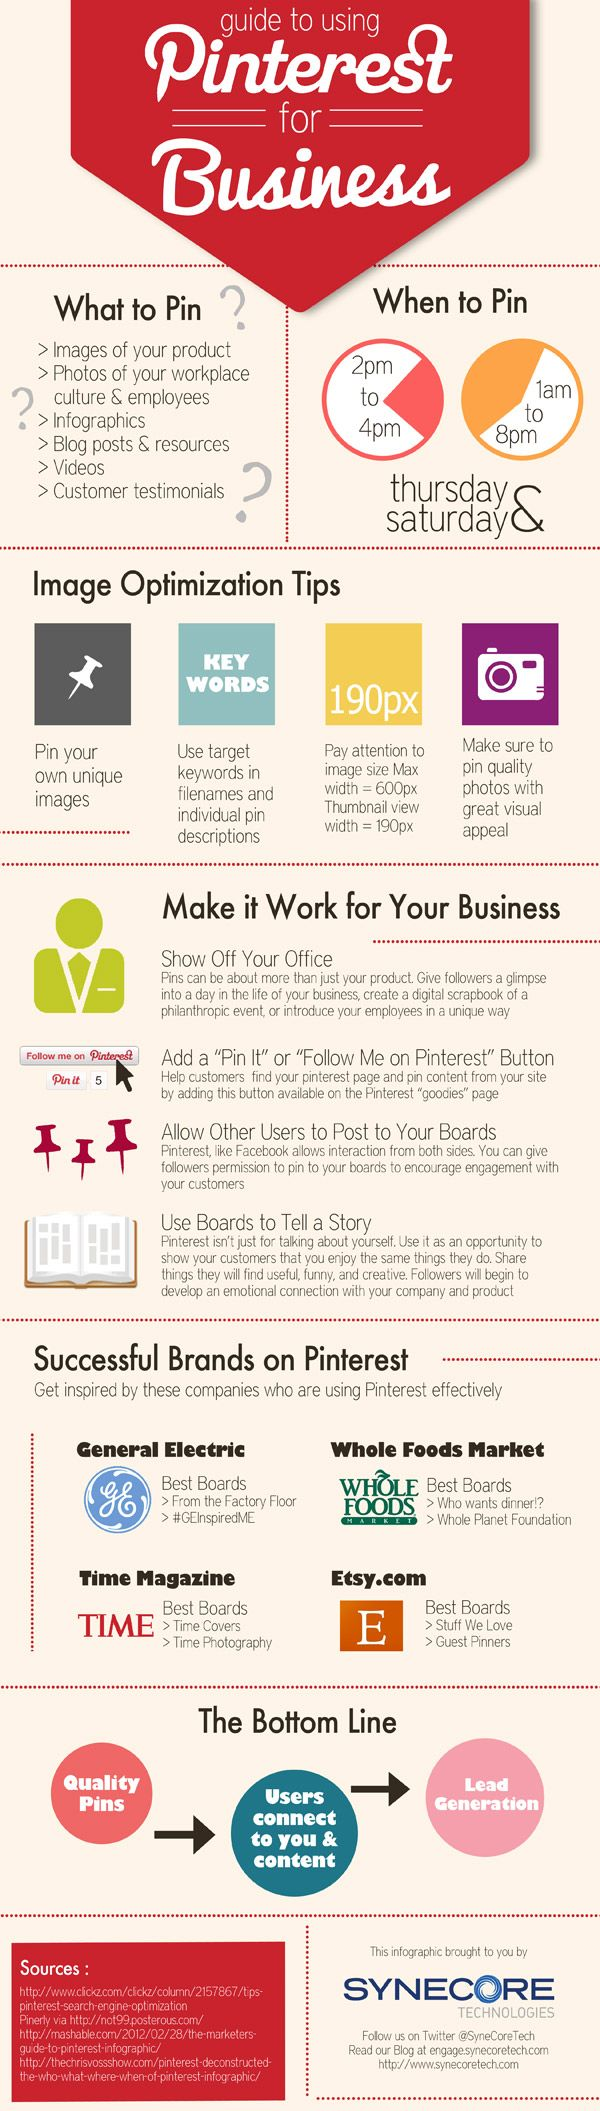 Fresh on IGM > Pinterest For Business: Quick and easy tips on how to make Pinterest work for your business. > http://infographicsmania.com/pinterest-for-business/